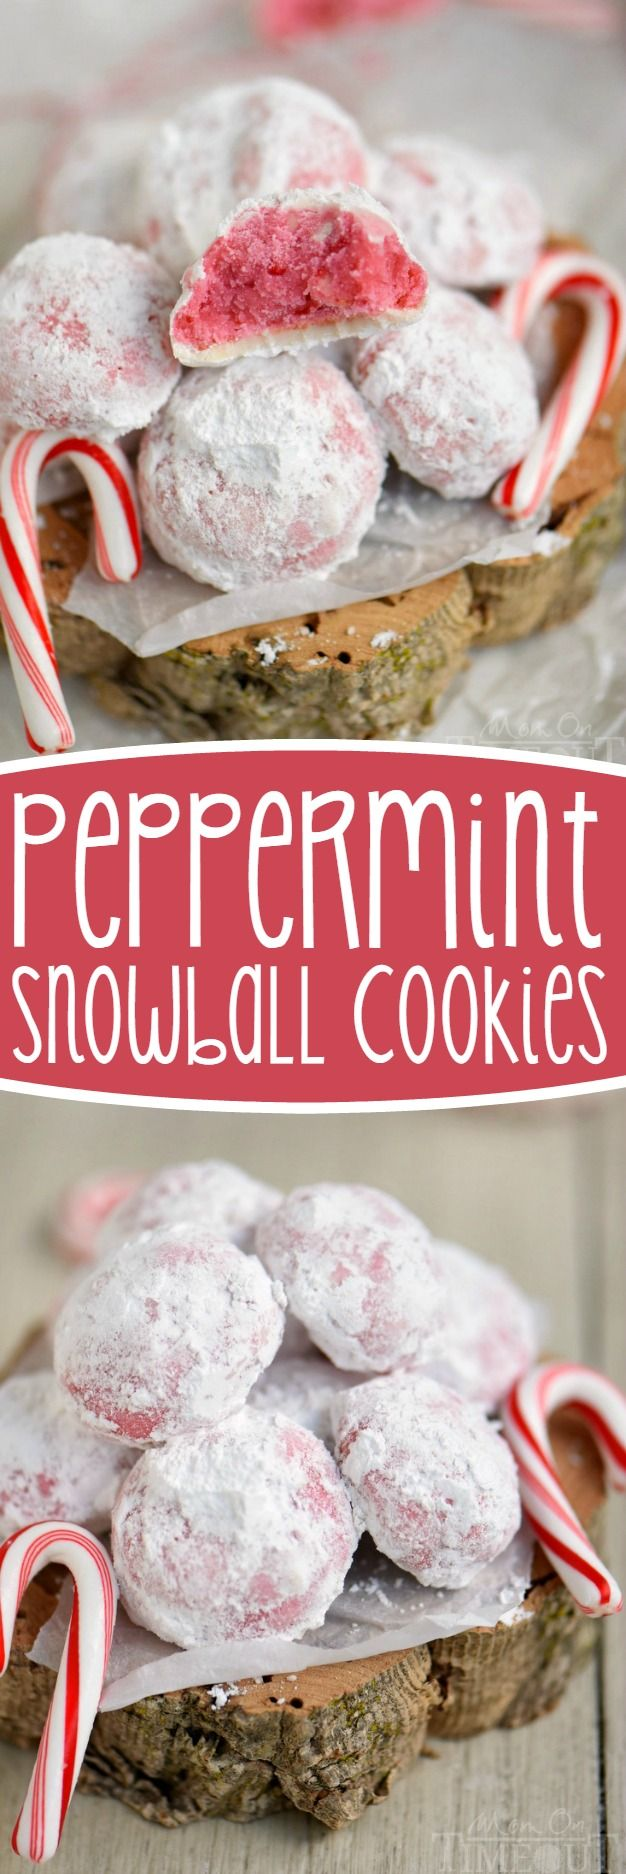 These Peppermint Snowball Cookies are everything a Christmas cookie…